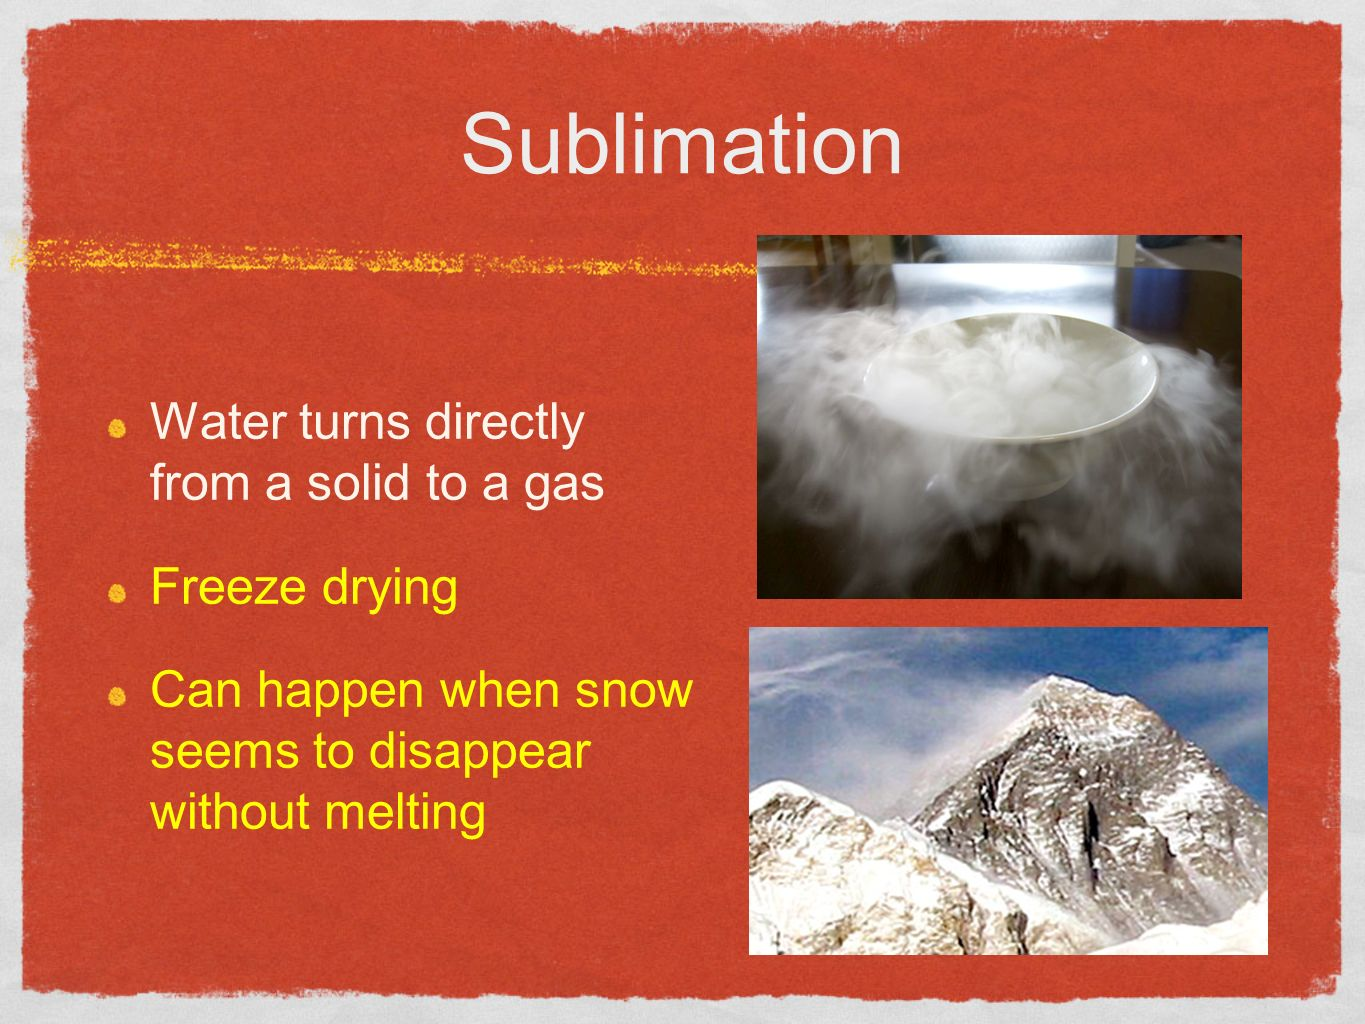 Sublimation Water turns directly from a solid to a gas Freeze drying Can happen when snow seems to disappear without melting